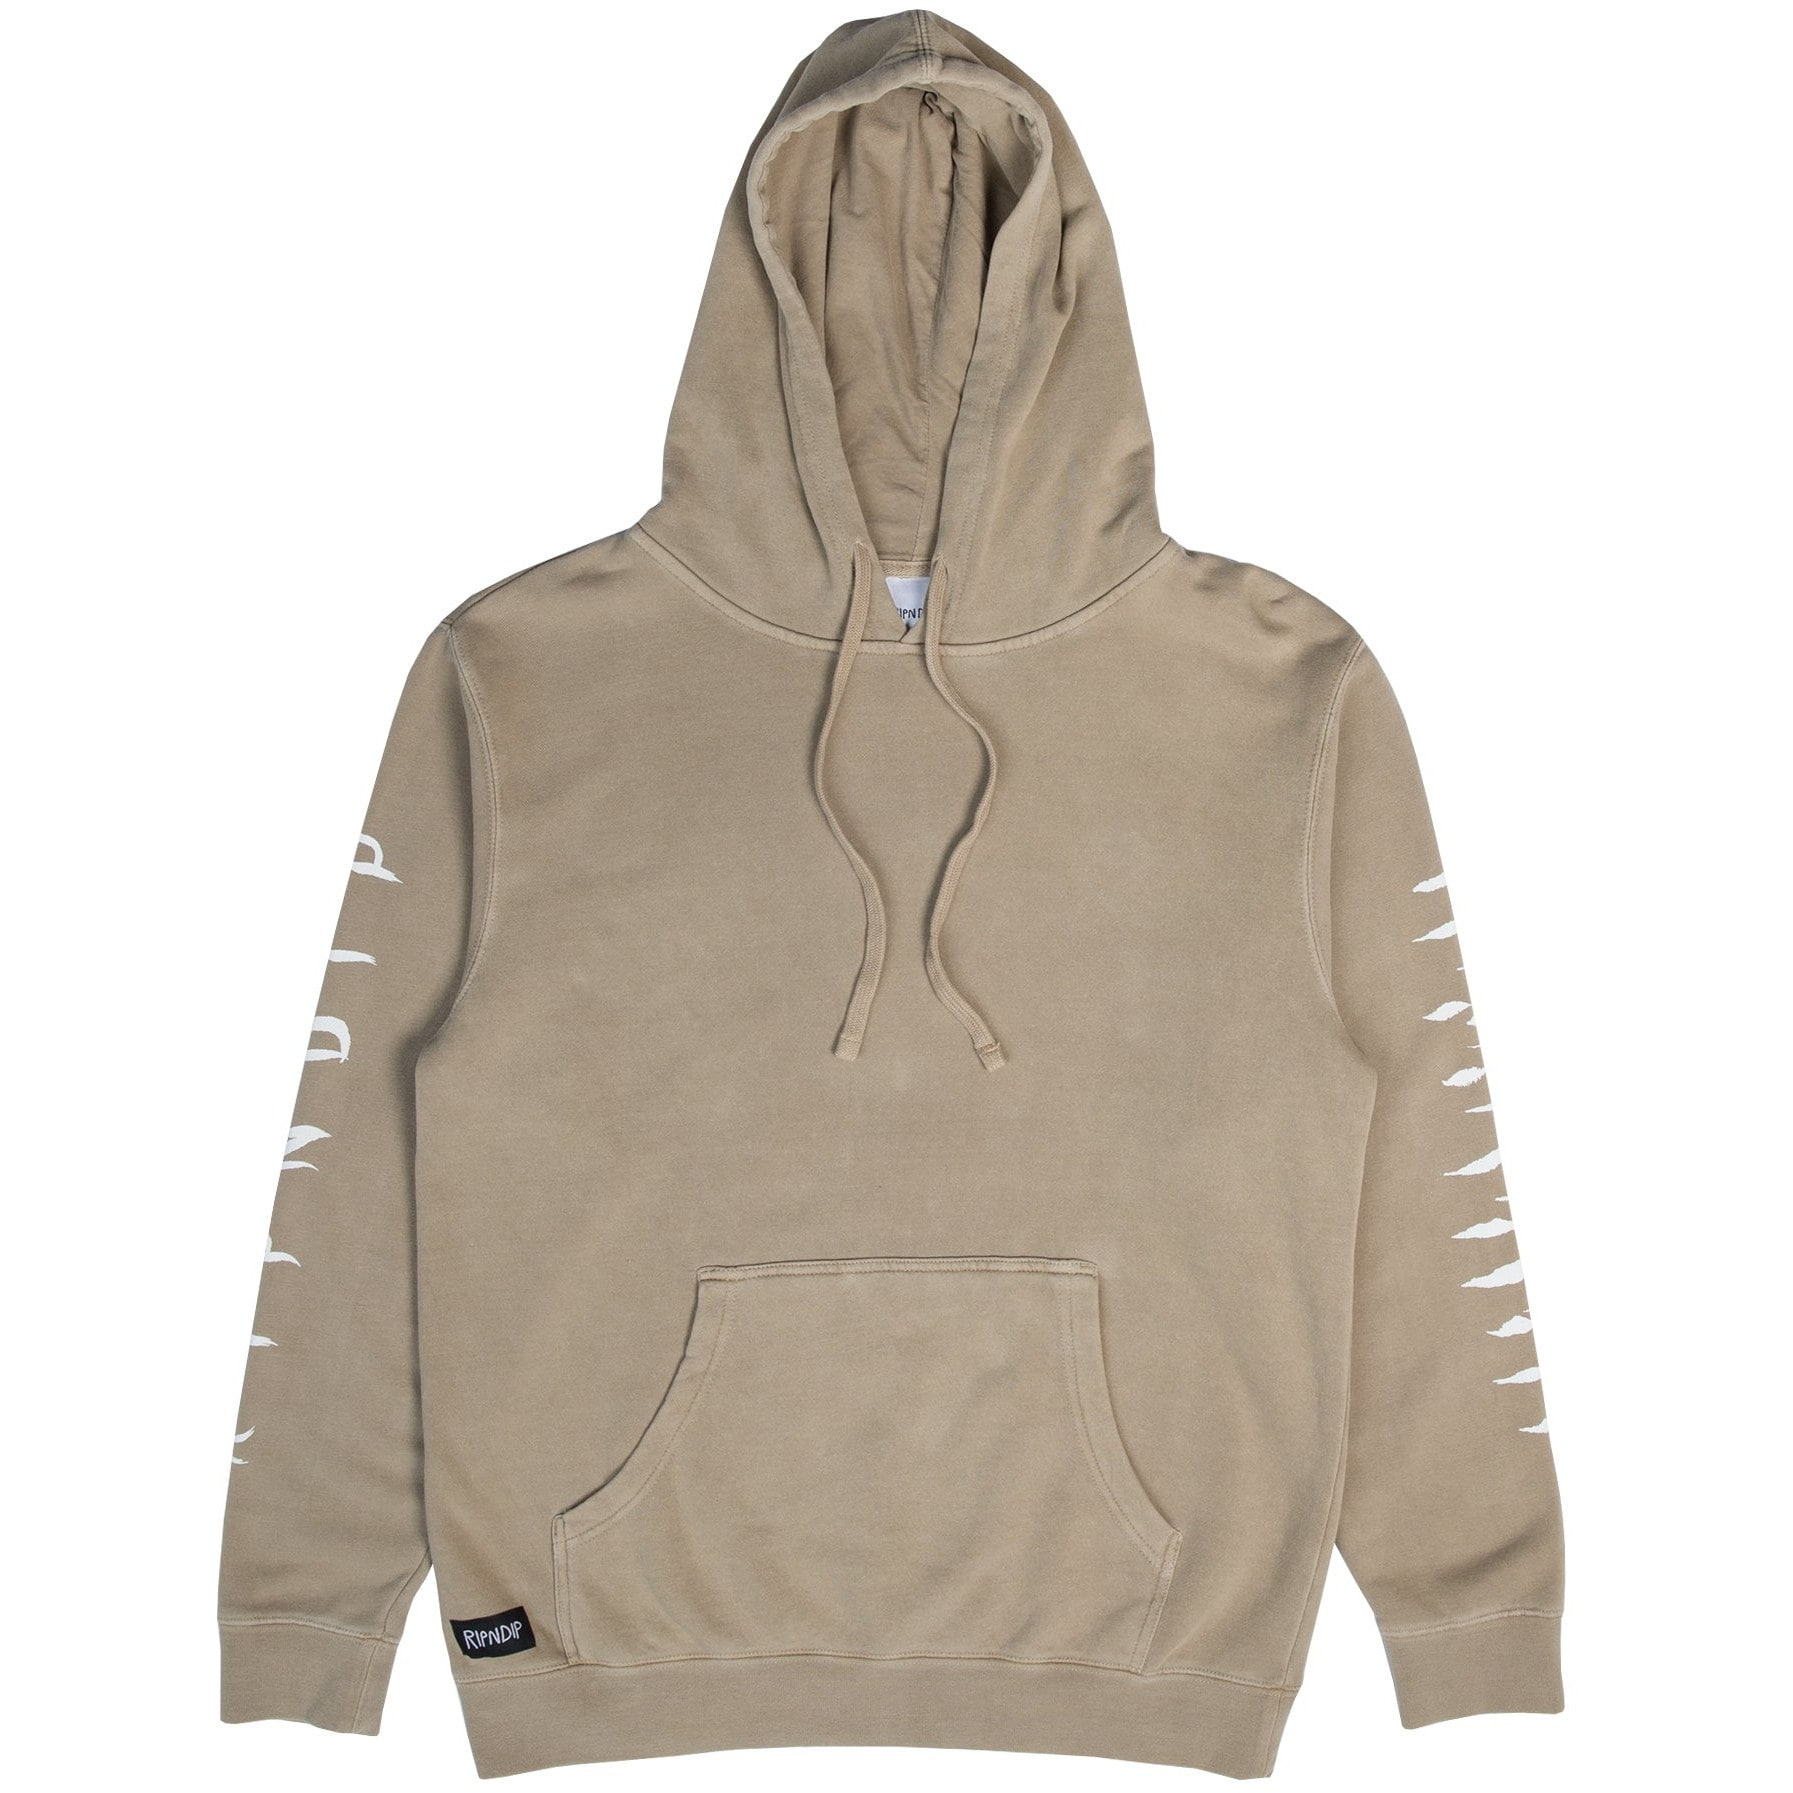 Image of RIPNDIP Tattoo Nerm Hoodie - Tan